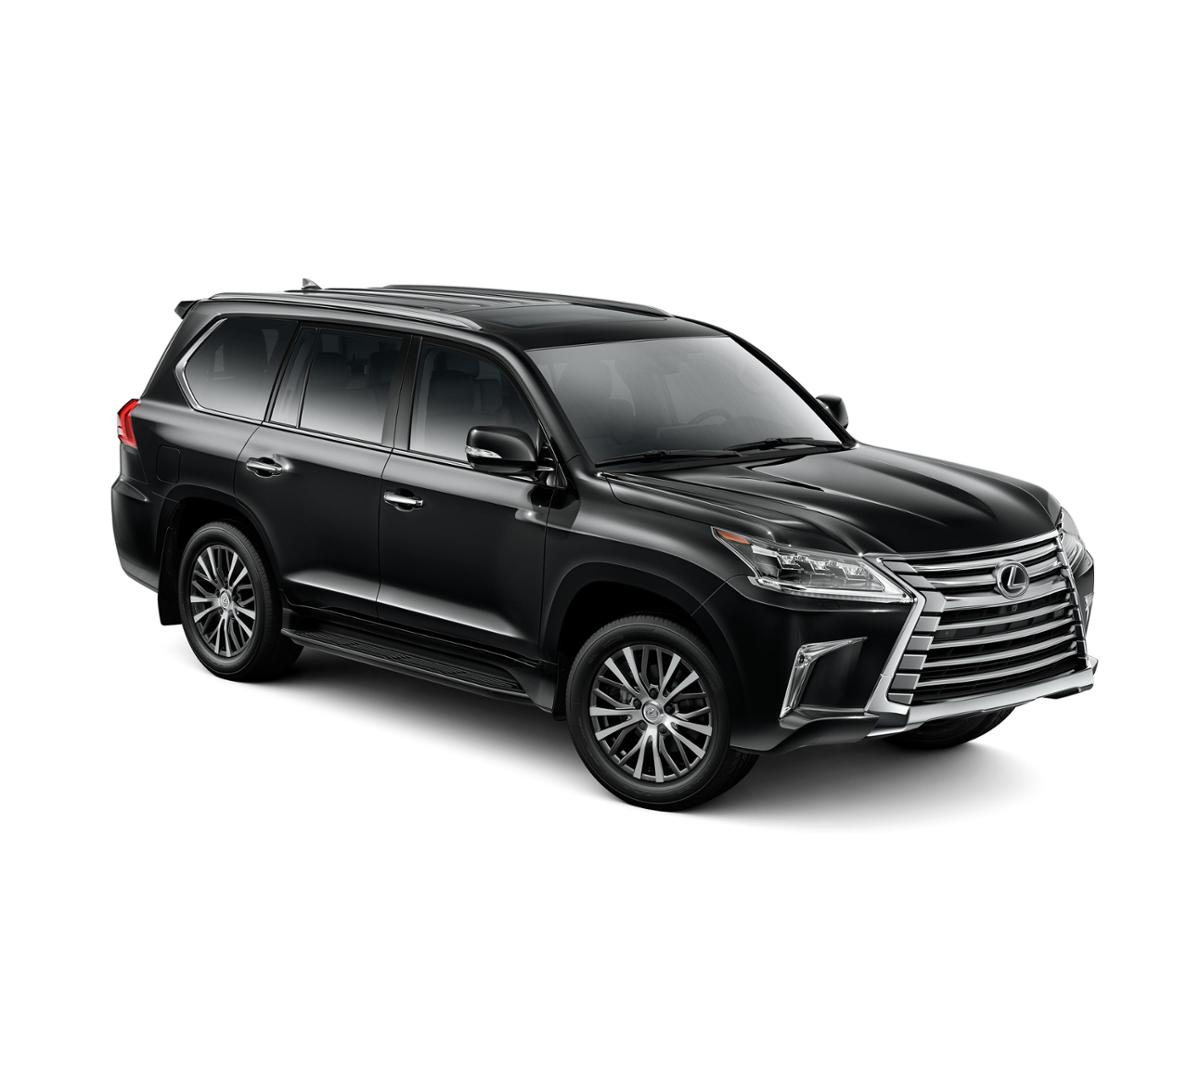 2019 Lexus LX 570 Vehicle Photo in Las Vegas, NV 89146